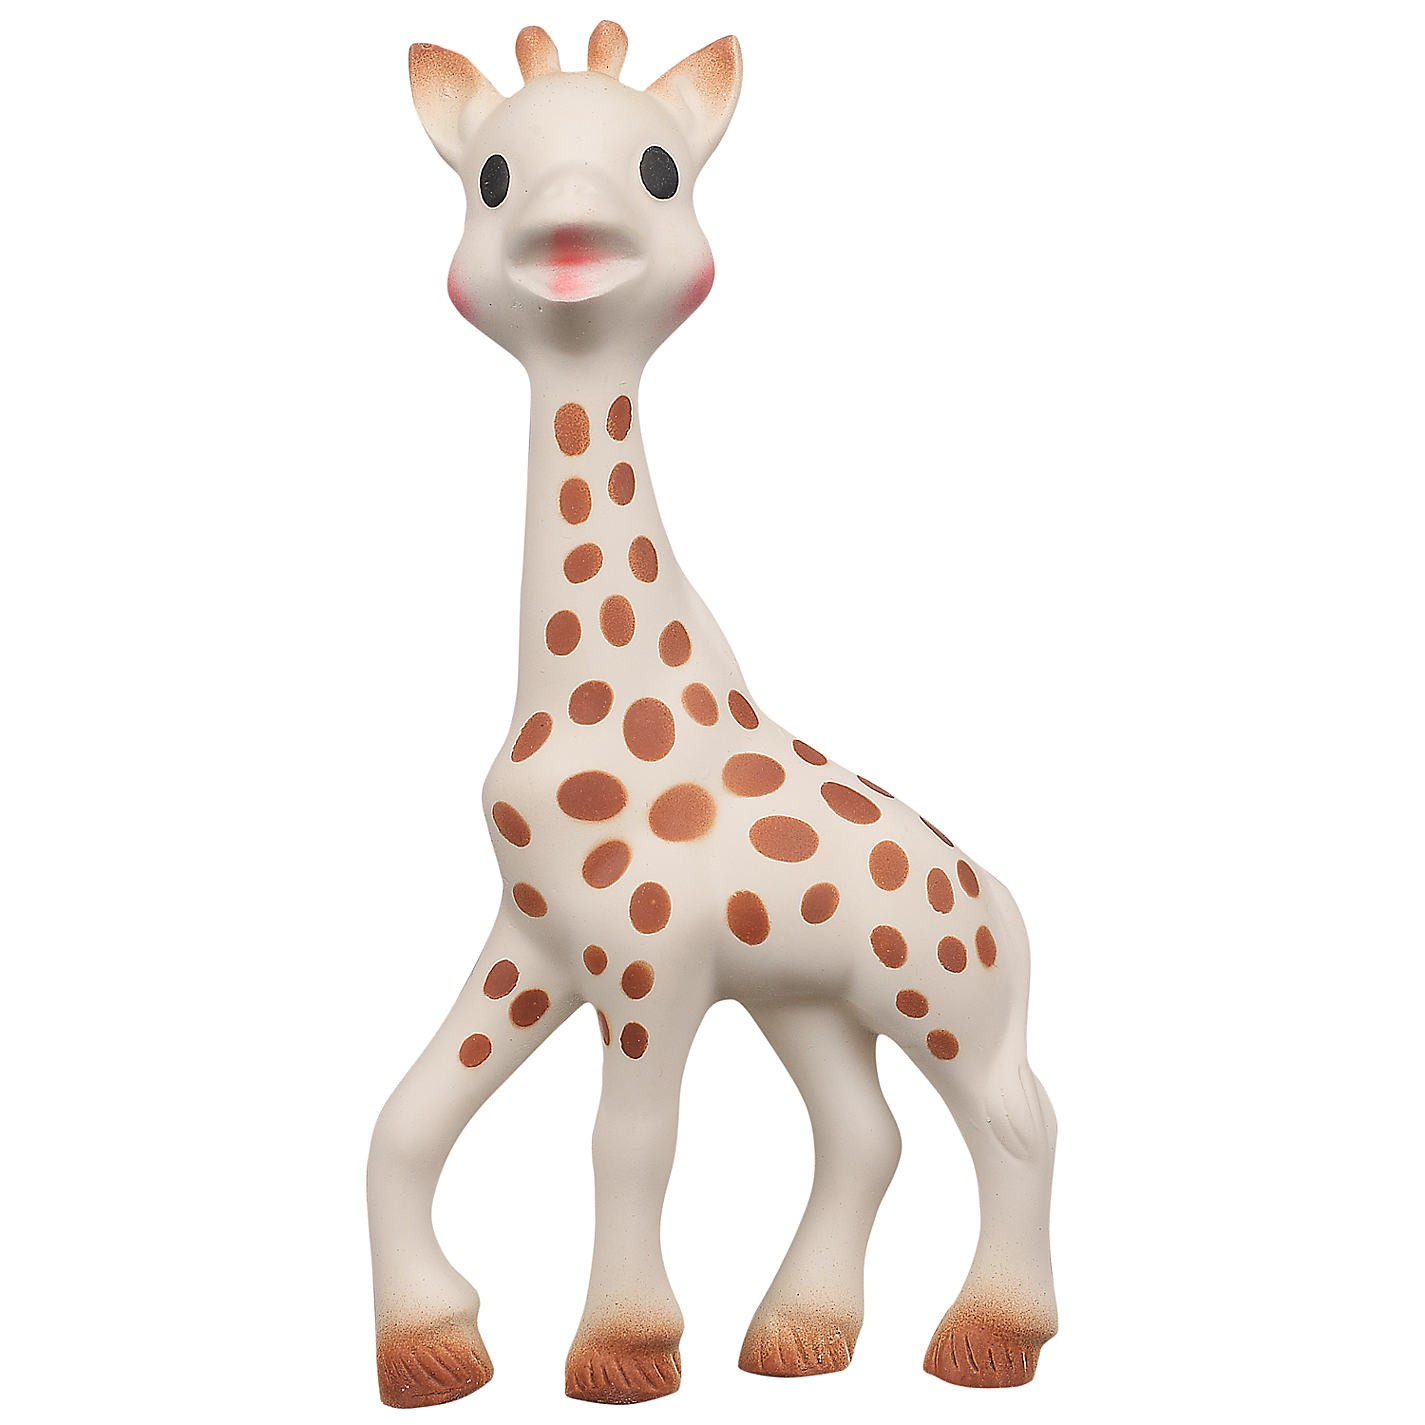 sophie the giraffe natural rubber teethig toy for baby made in france. Black Bedroom Furniture Sets. Home Design Ideas